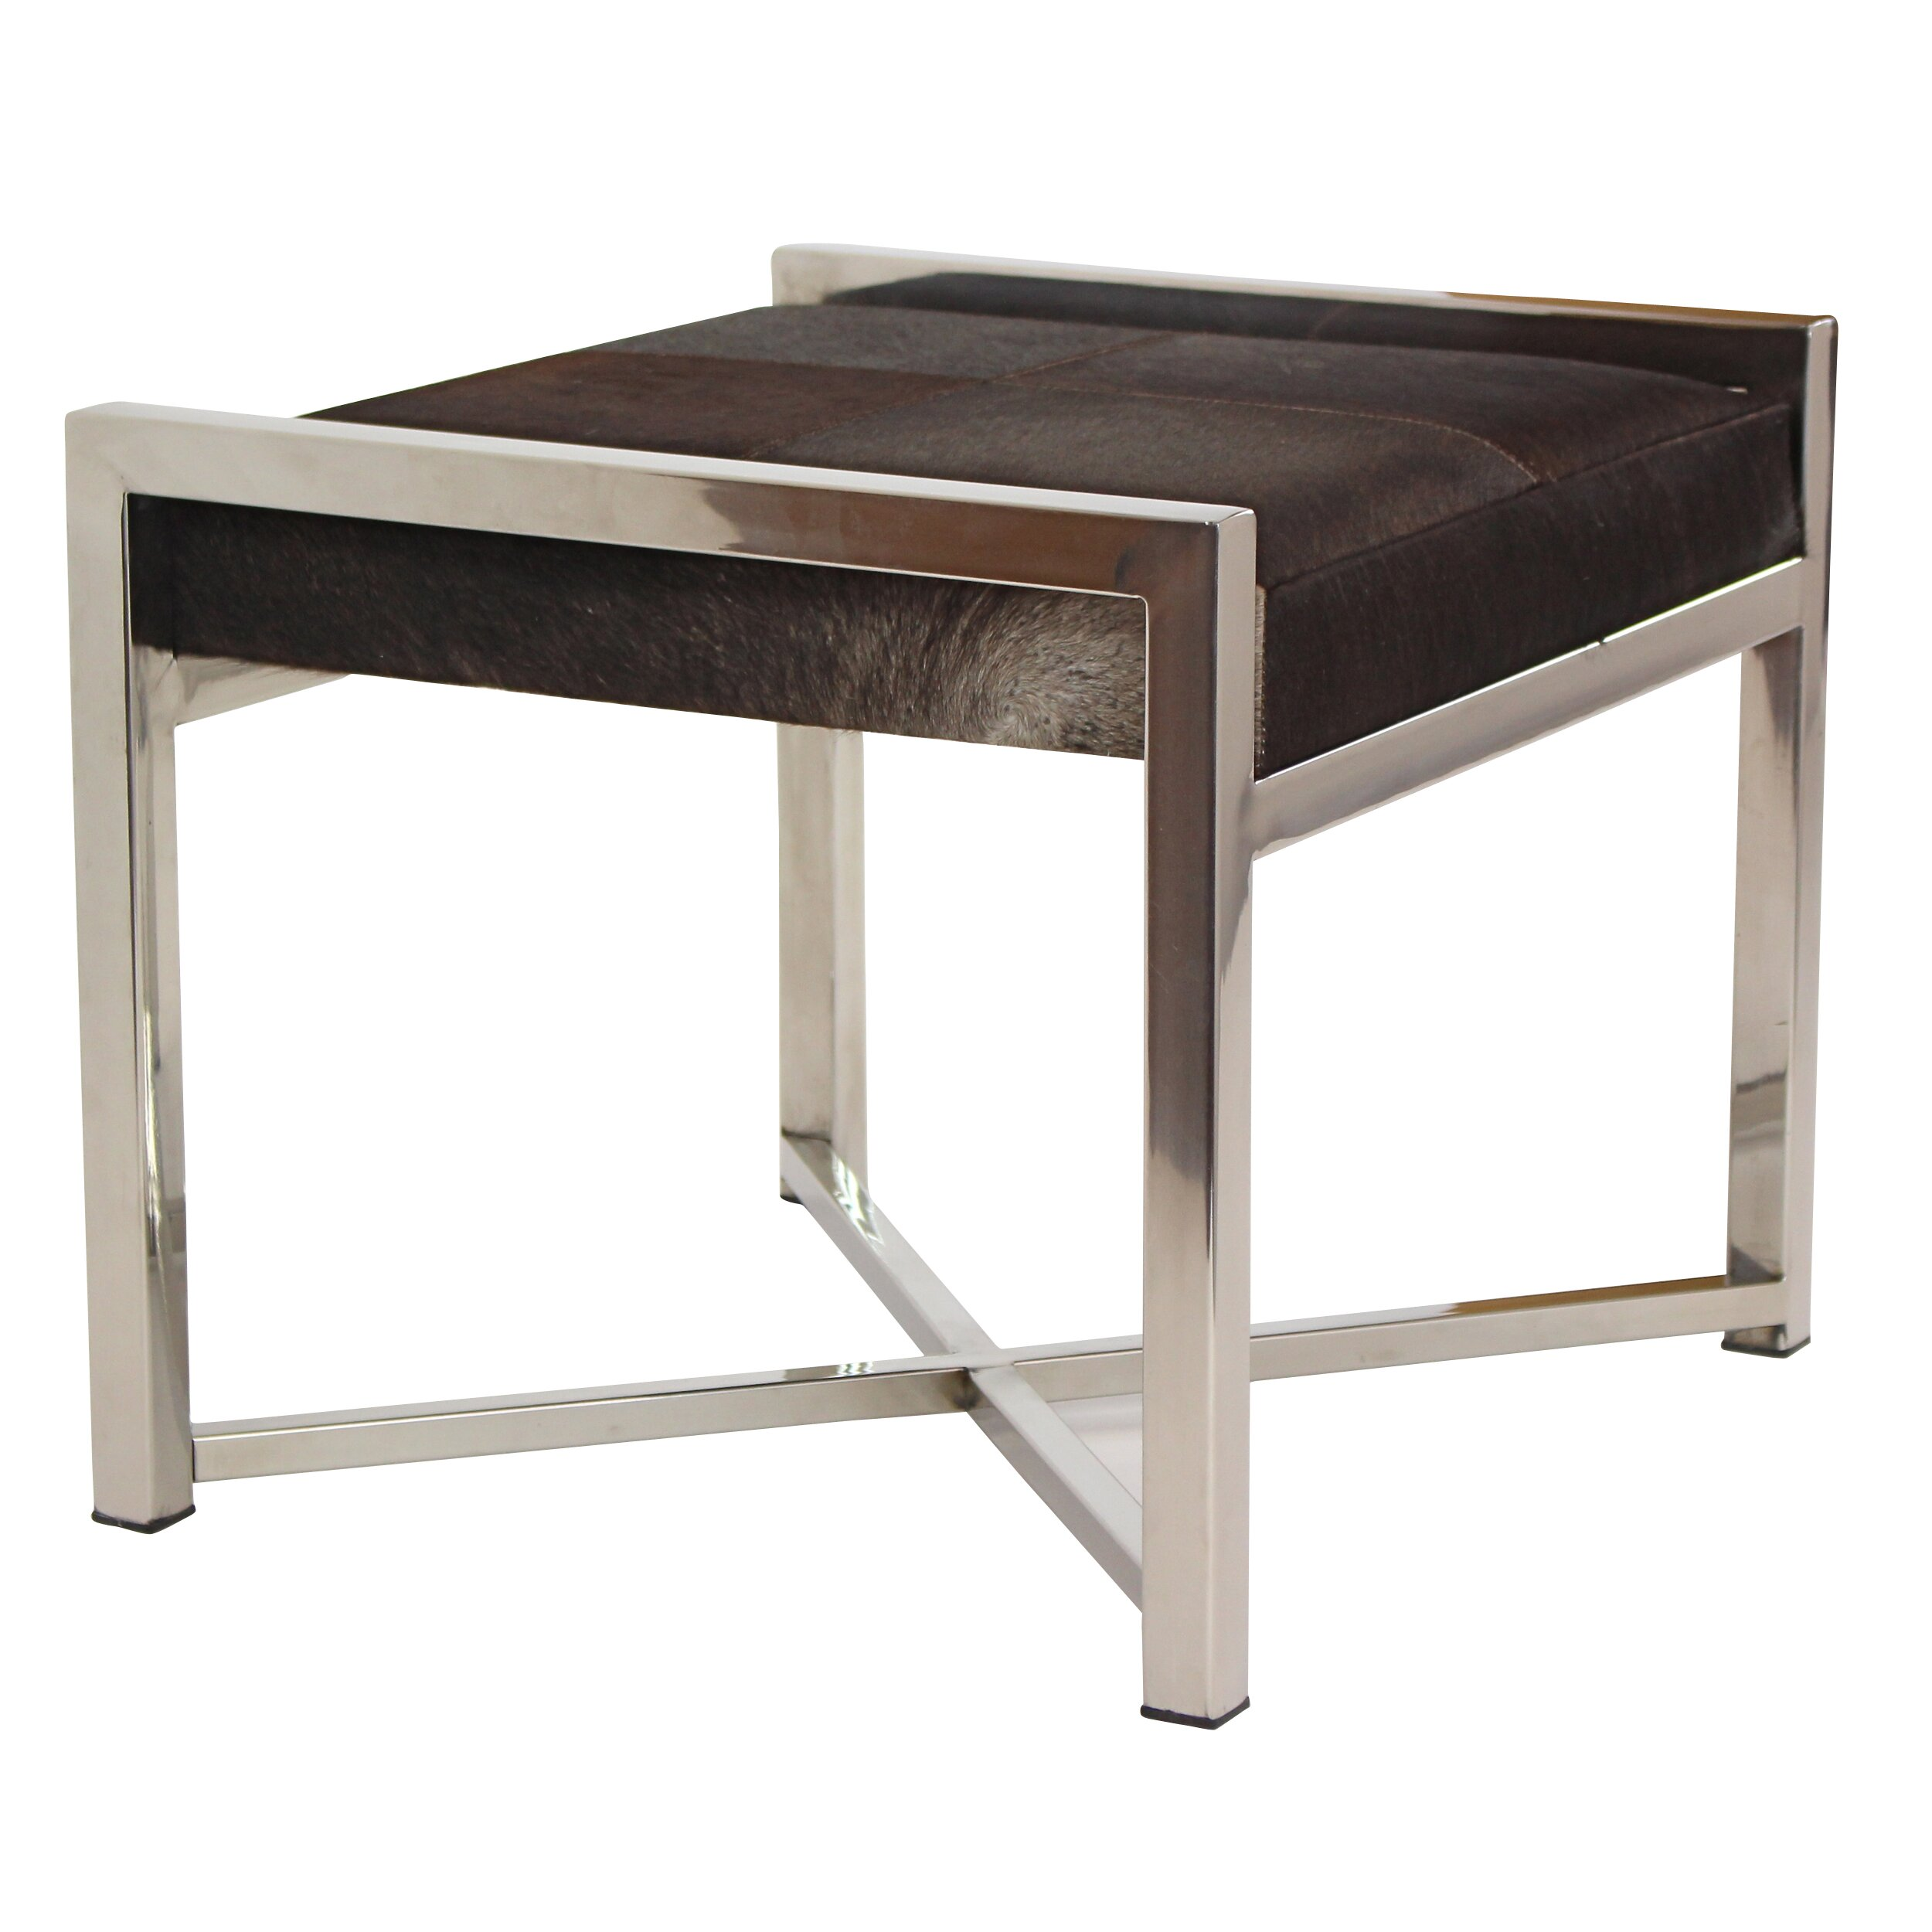 Metal Bedroom Bench Aspire Grayson Metal Bedroom Bench Reviews Wayfair